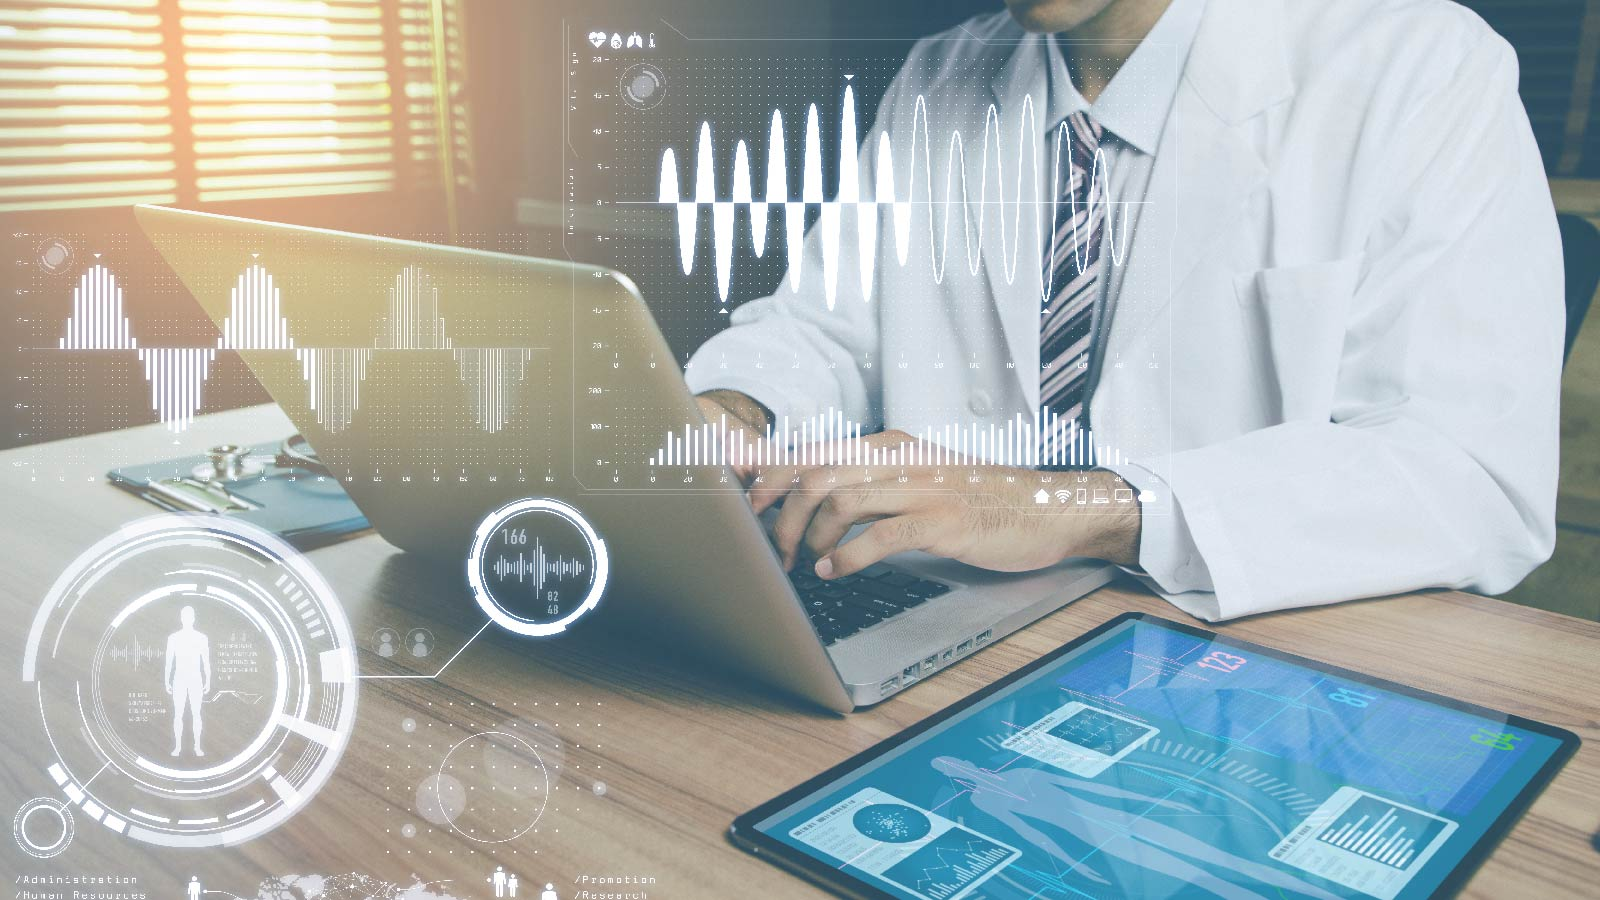 IoT Healthcare Market to Touch _188.2 Billion by 2025